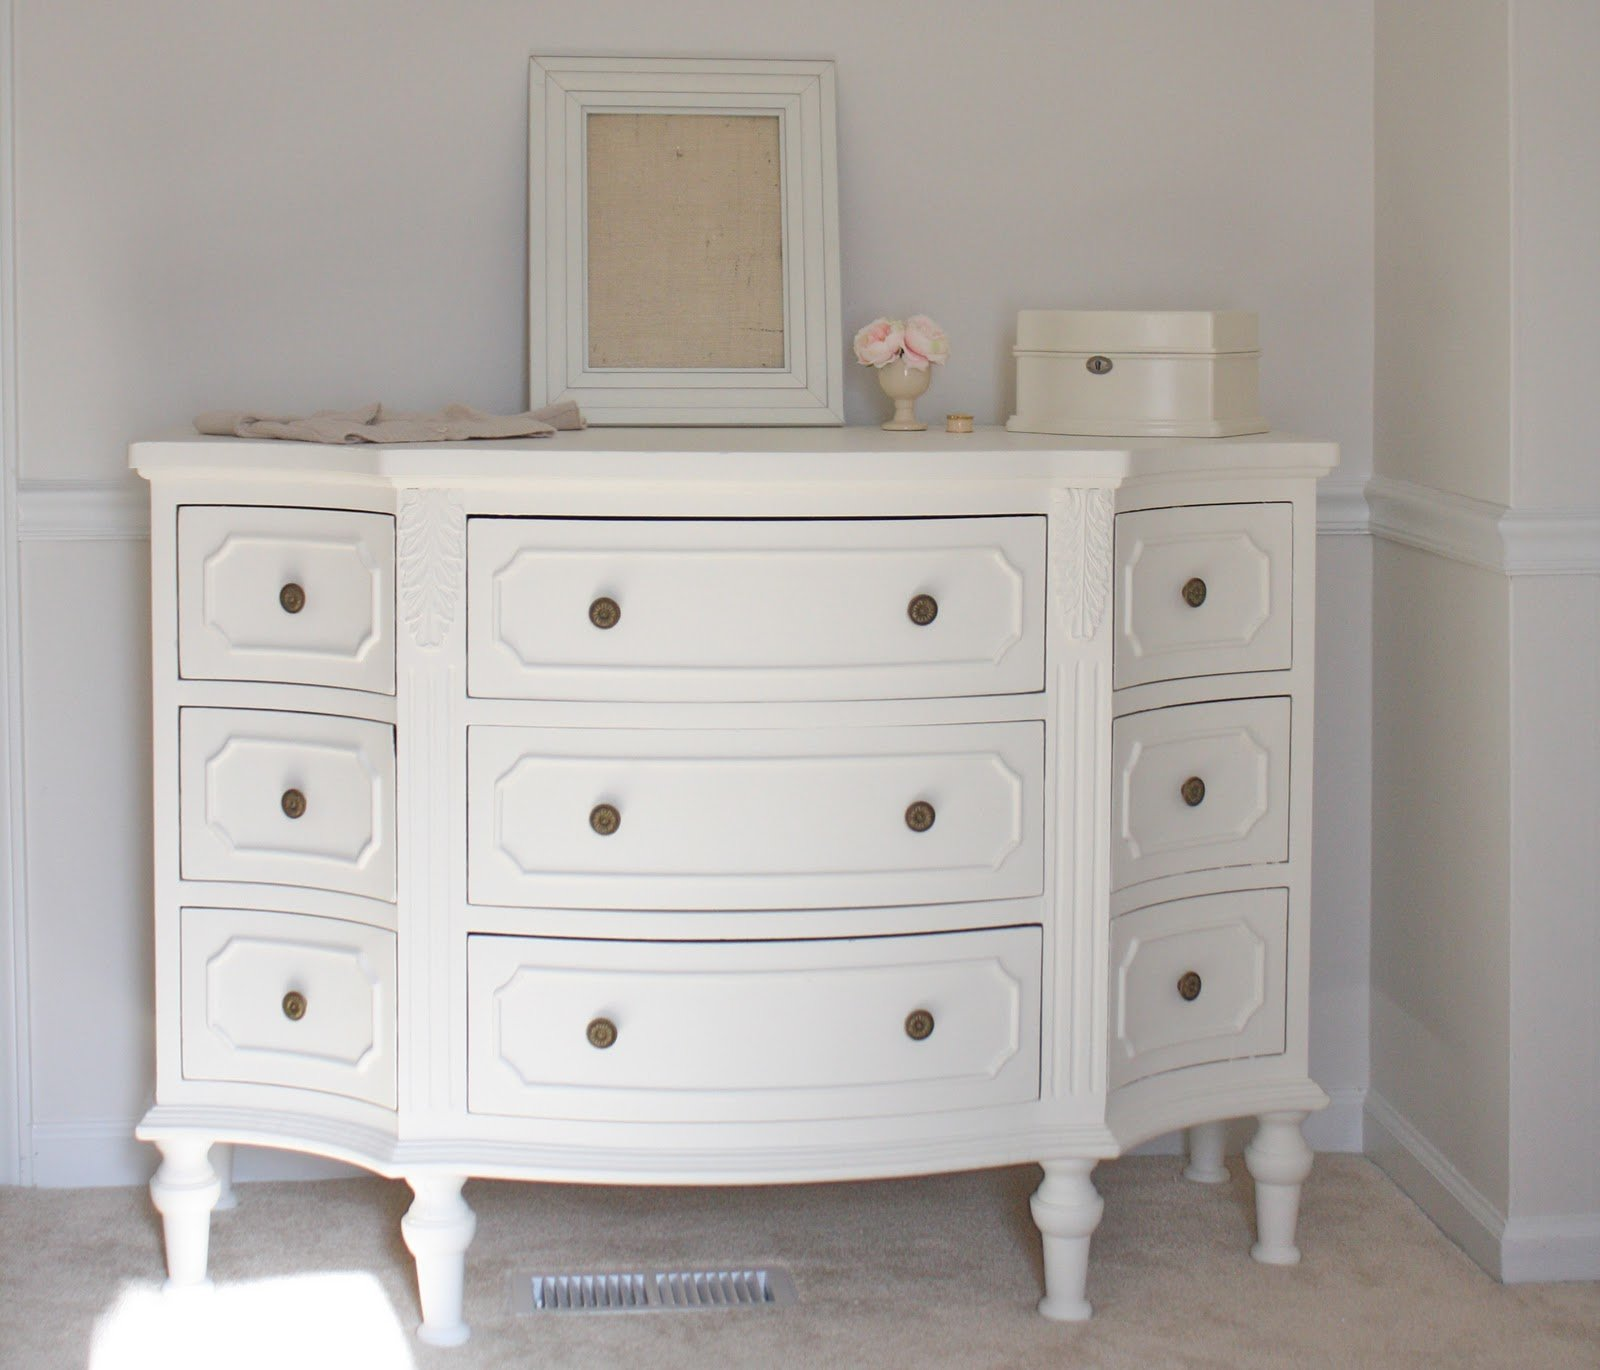 Best Adalyn S Bedroom Furniture Refinished Julie Blanner With Pictures